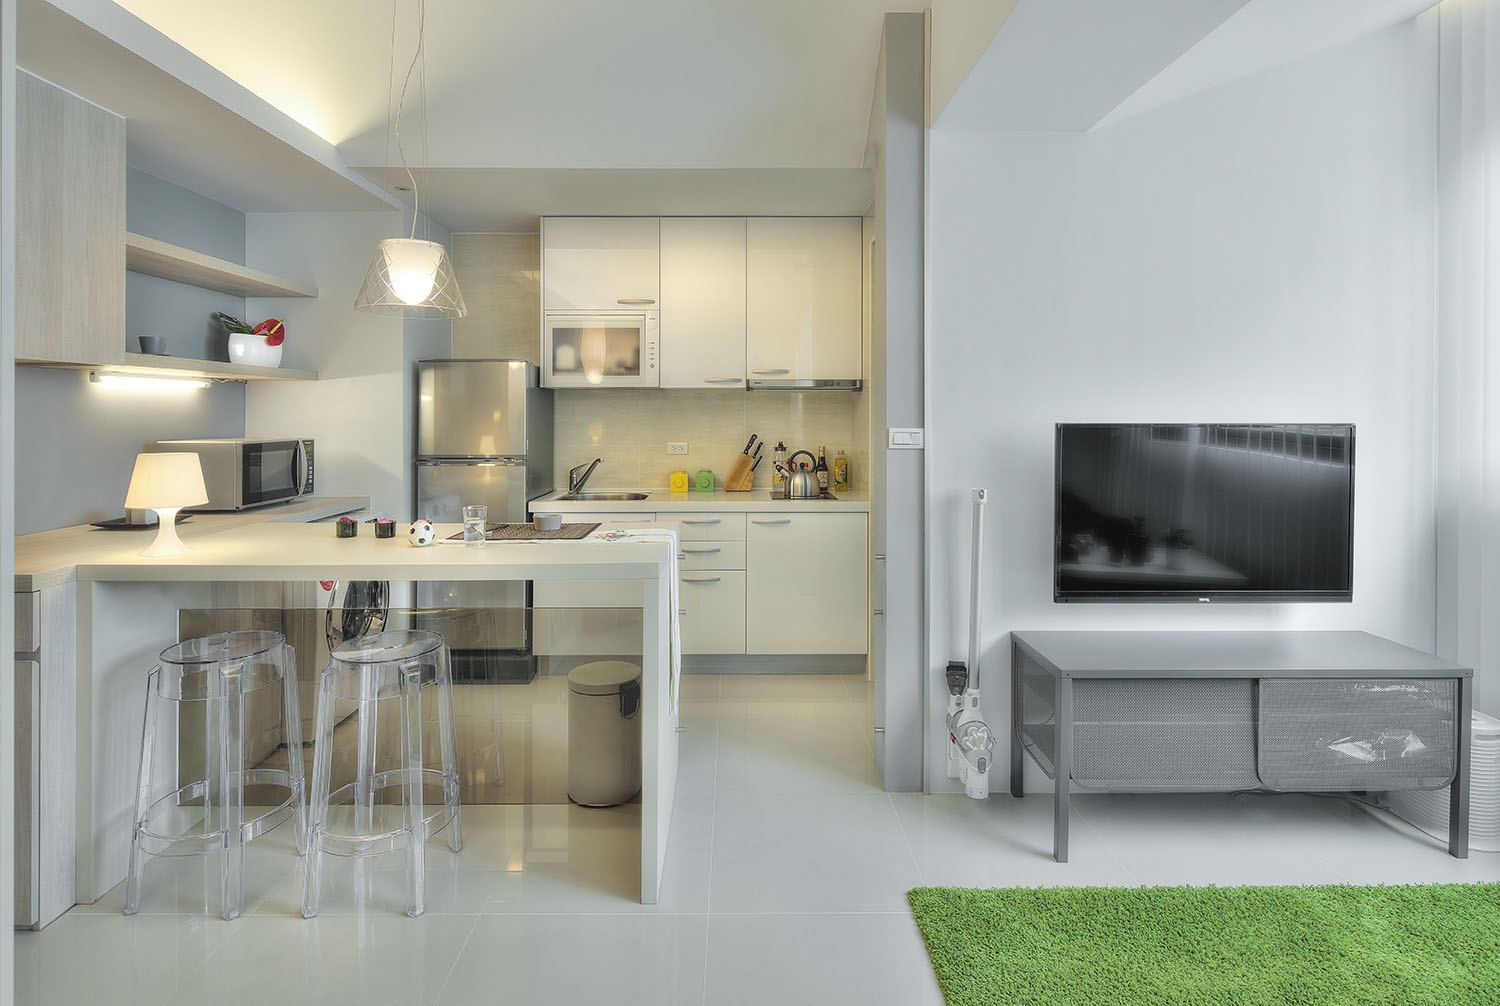 Apartment Small Kitchen Small Taipei Studio Apartment With Clever Efficient Design